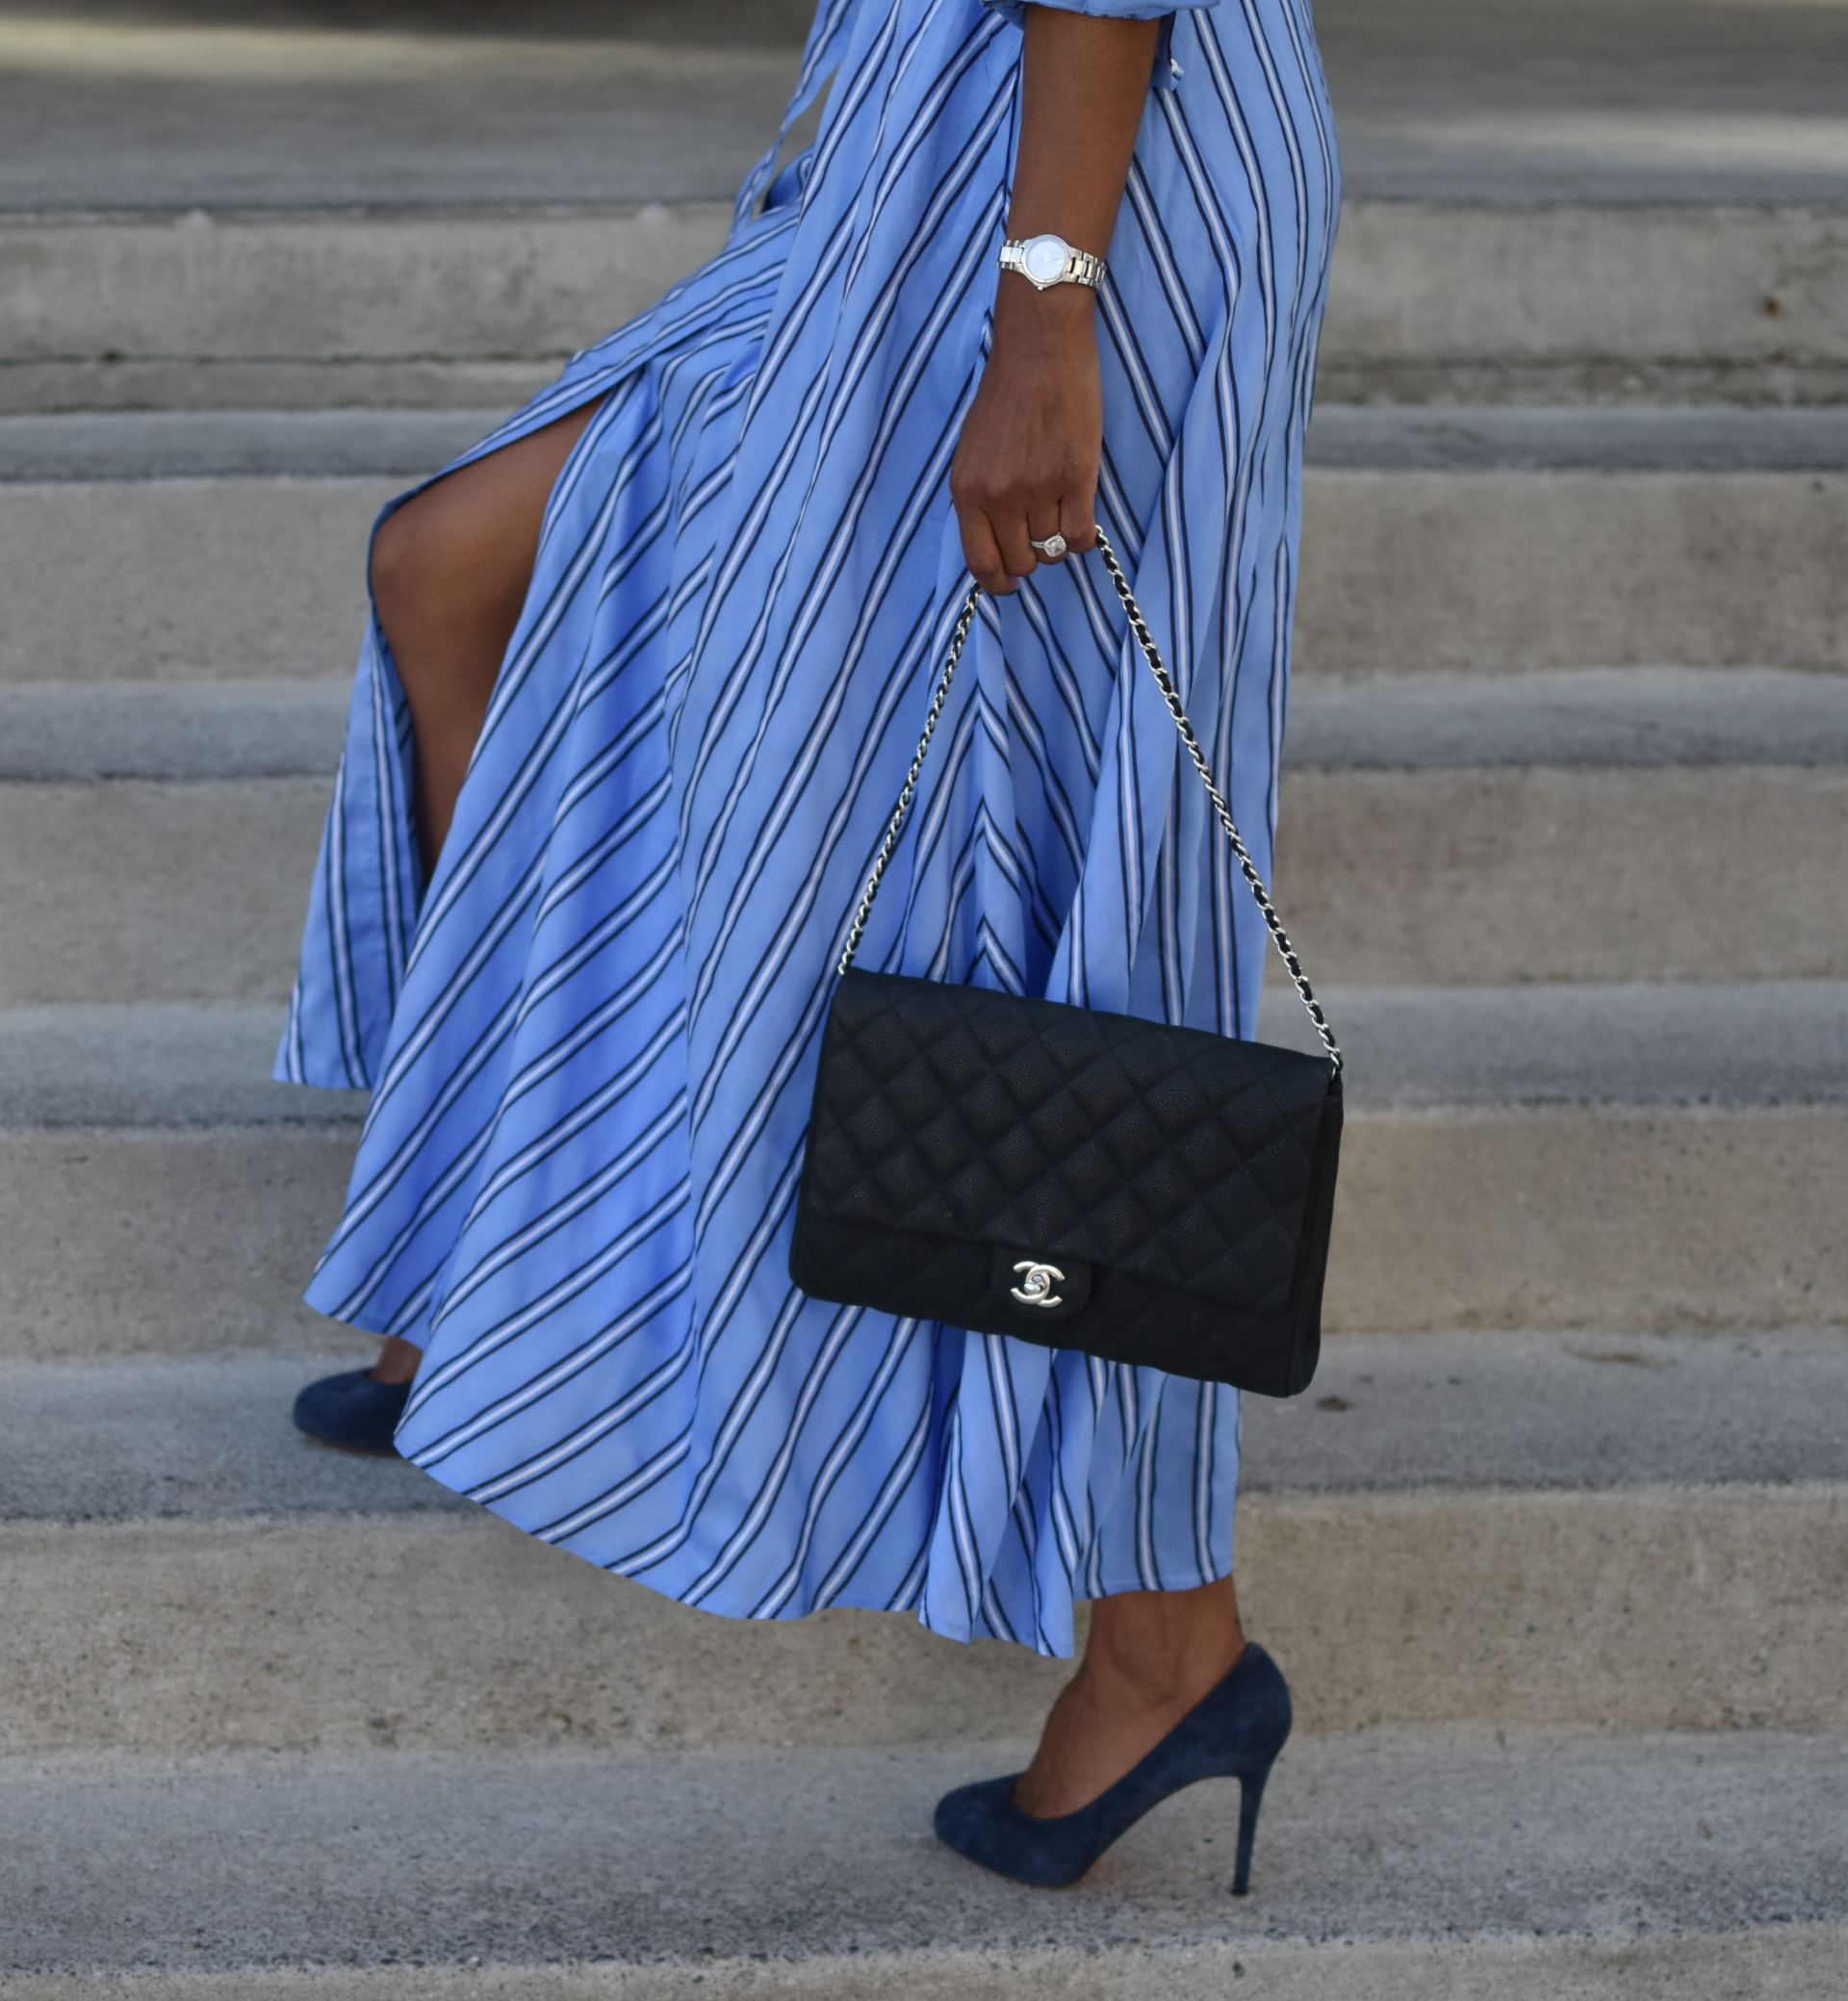 Feeling Blue...Stripes! - cherry-picked STYLE